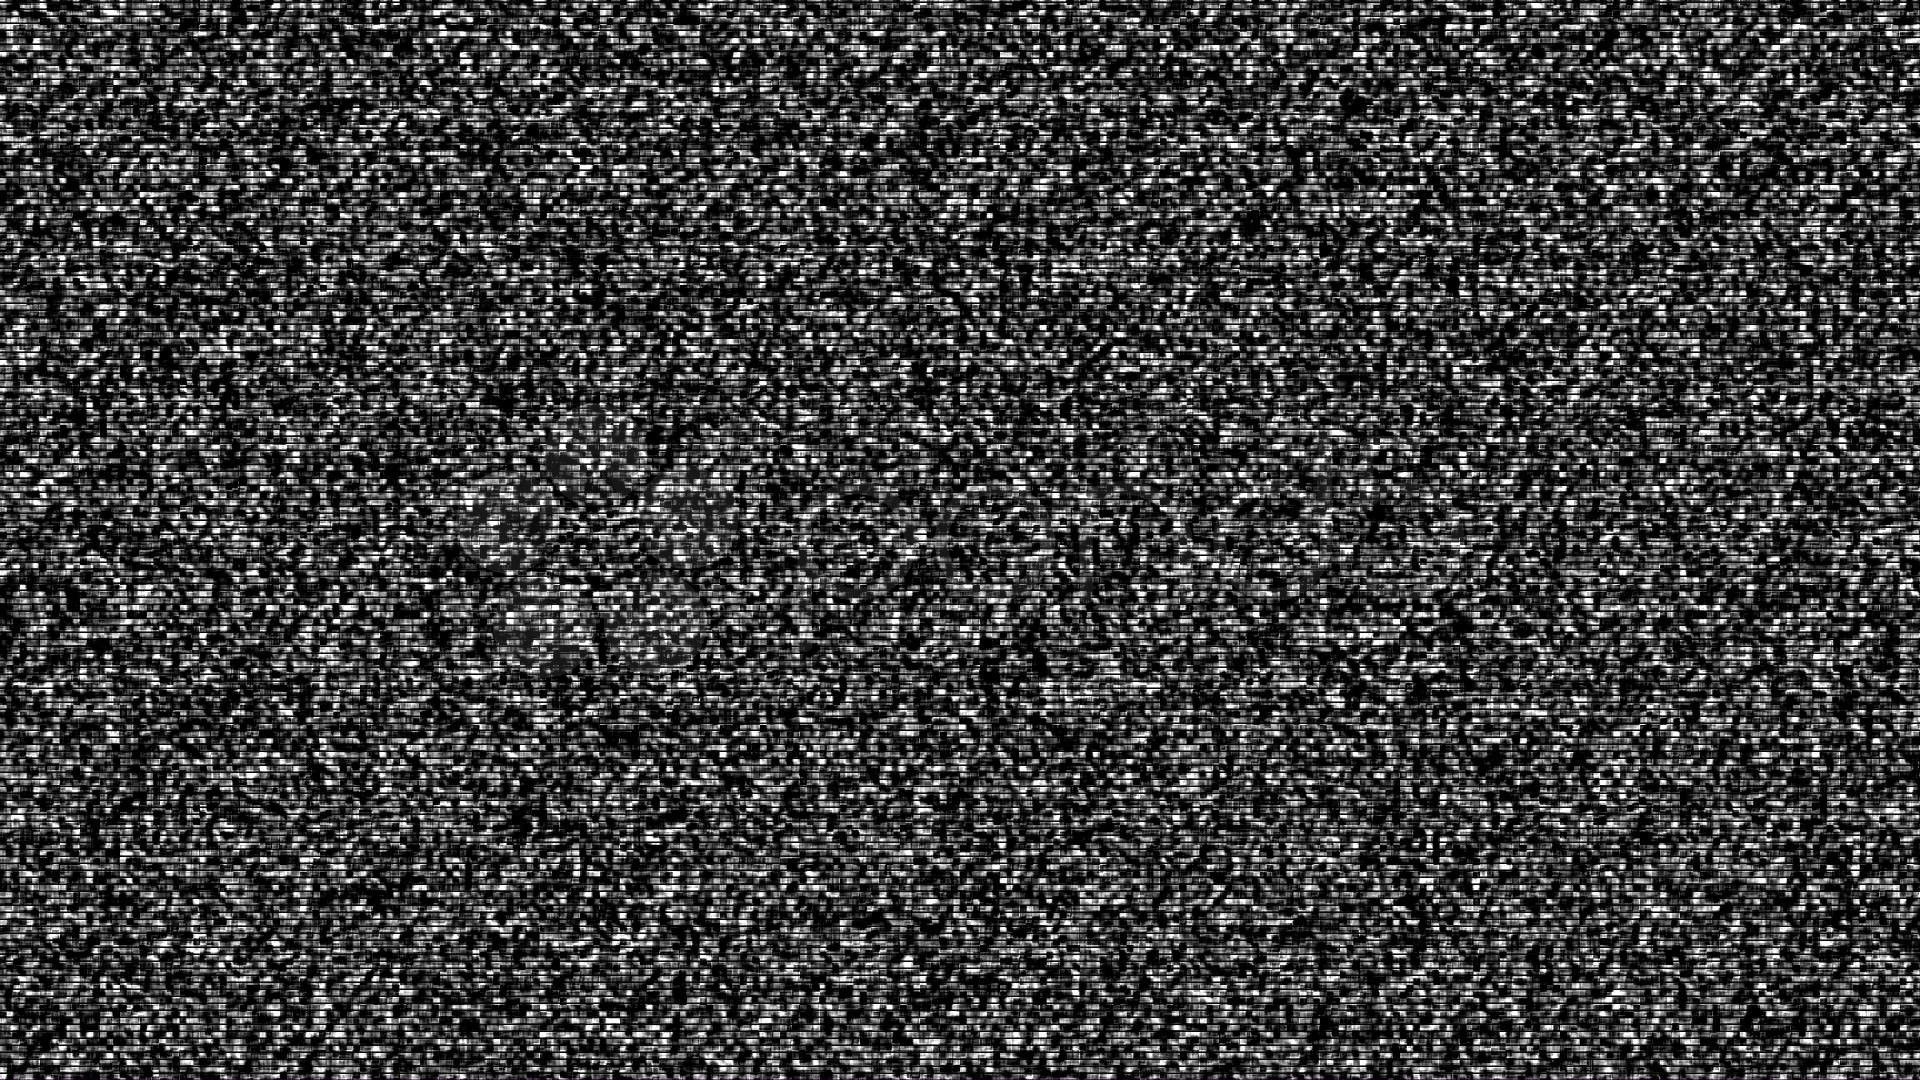 Colorful Tv Static Background Tv static noise with sound